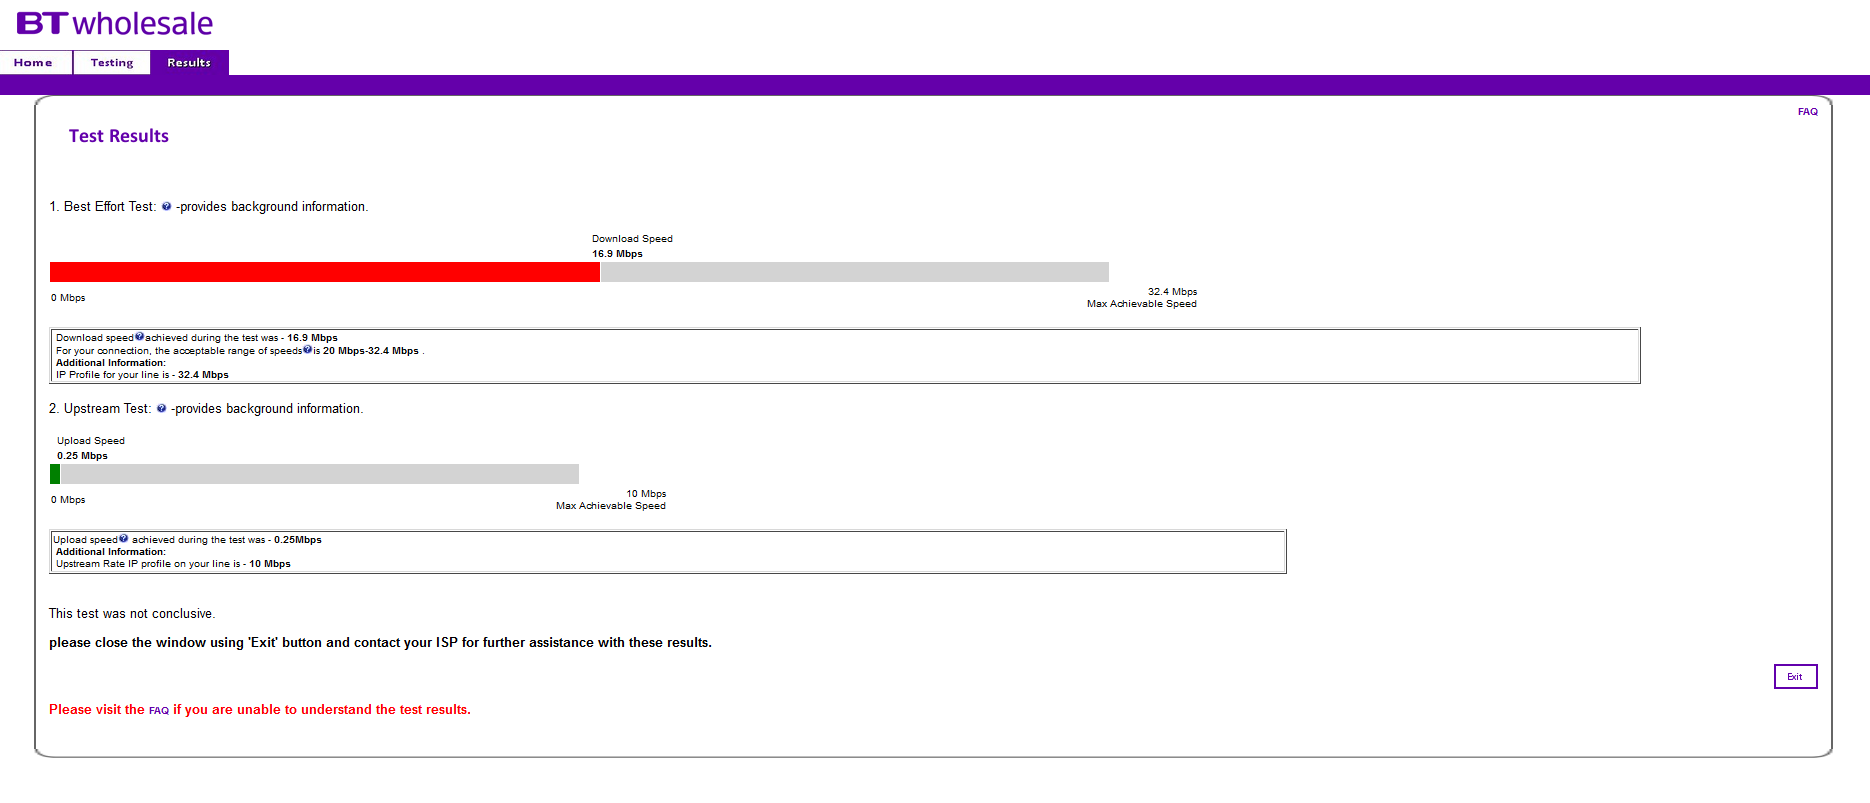 Slow download and very slow upload speeds - Plusnet Community